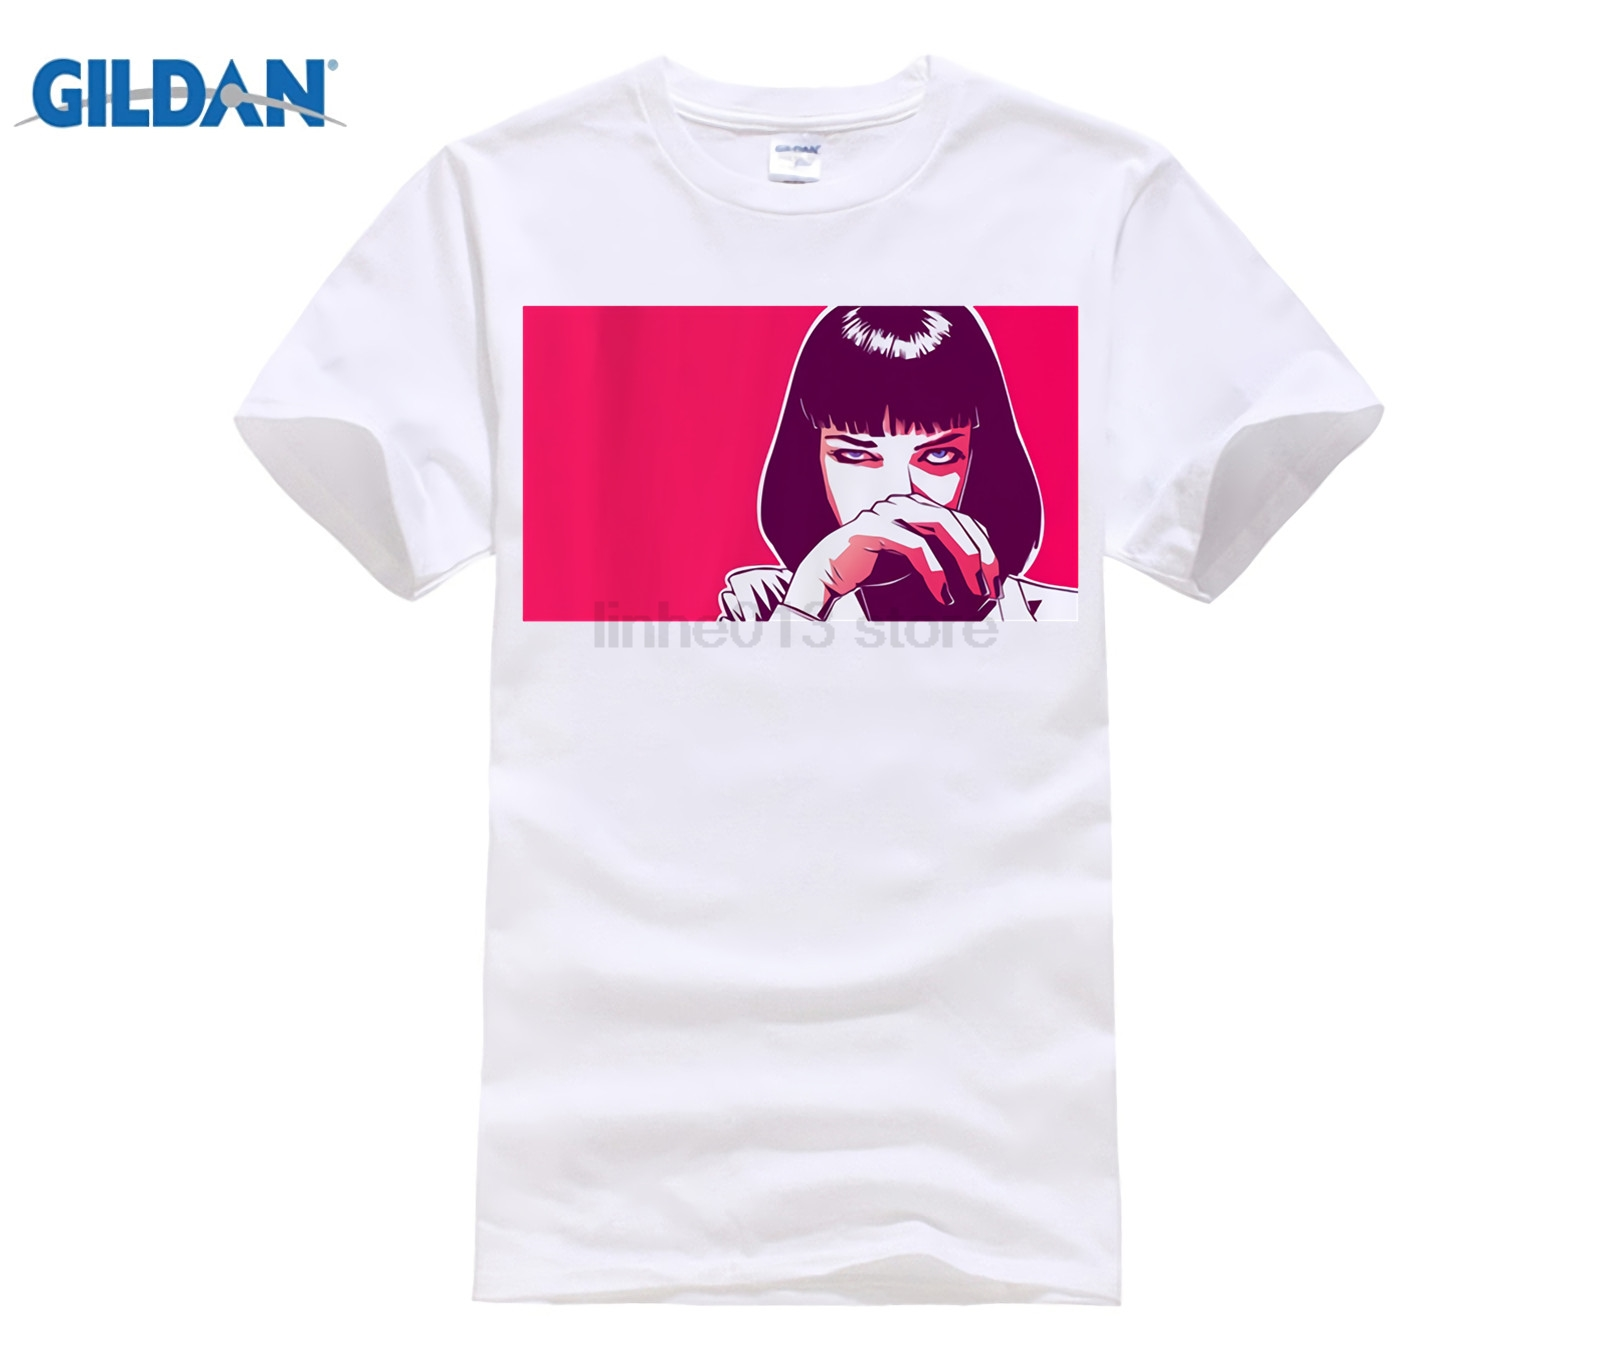 gildan-movie-pulp-fiction-t-shirt-men-summer-short-sleeve-mia-wallace-tees-100-cotton-quentin-font-b-tarantino-b-font-t-shirts-harajuku